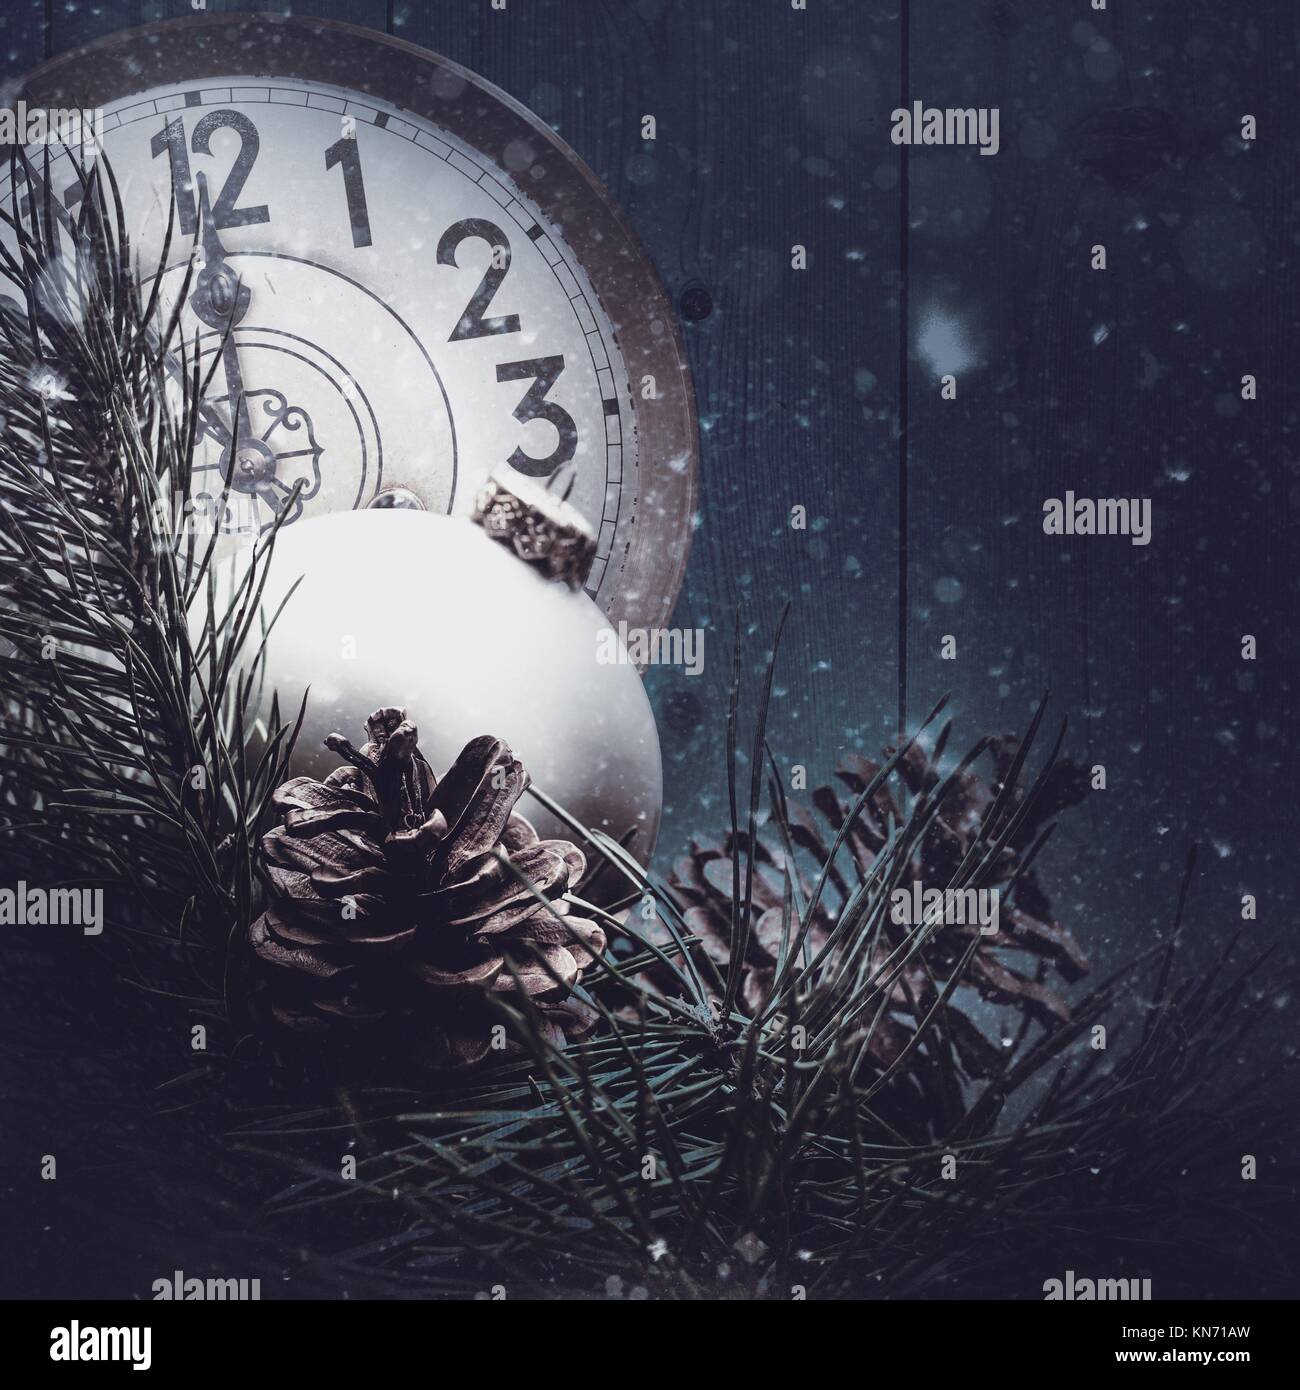 Abstract xmas backgrounds with vintage watches and christmas decorations. Stock Photo